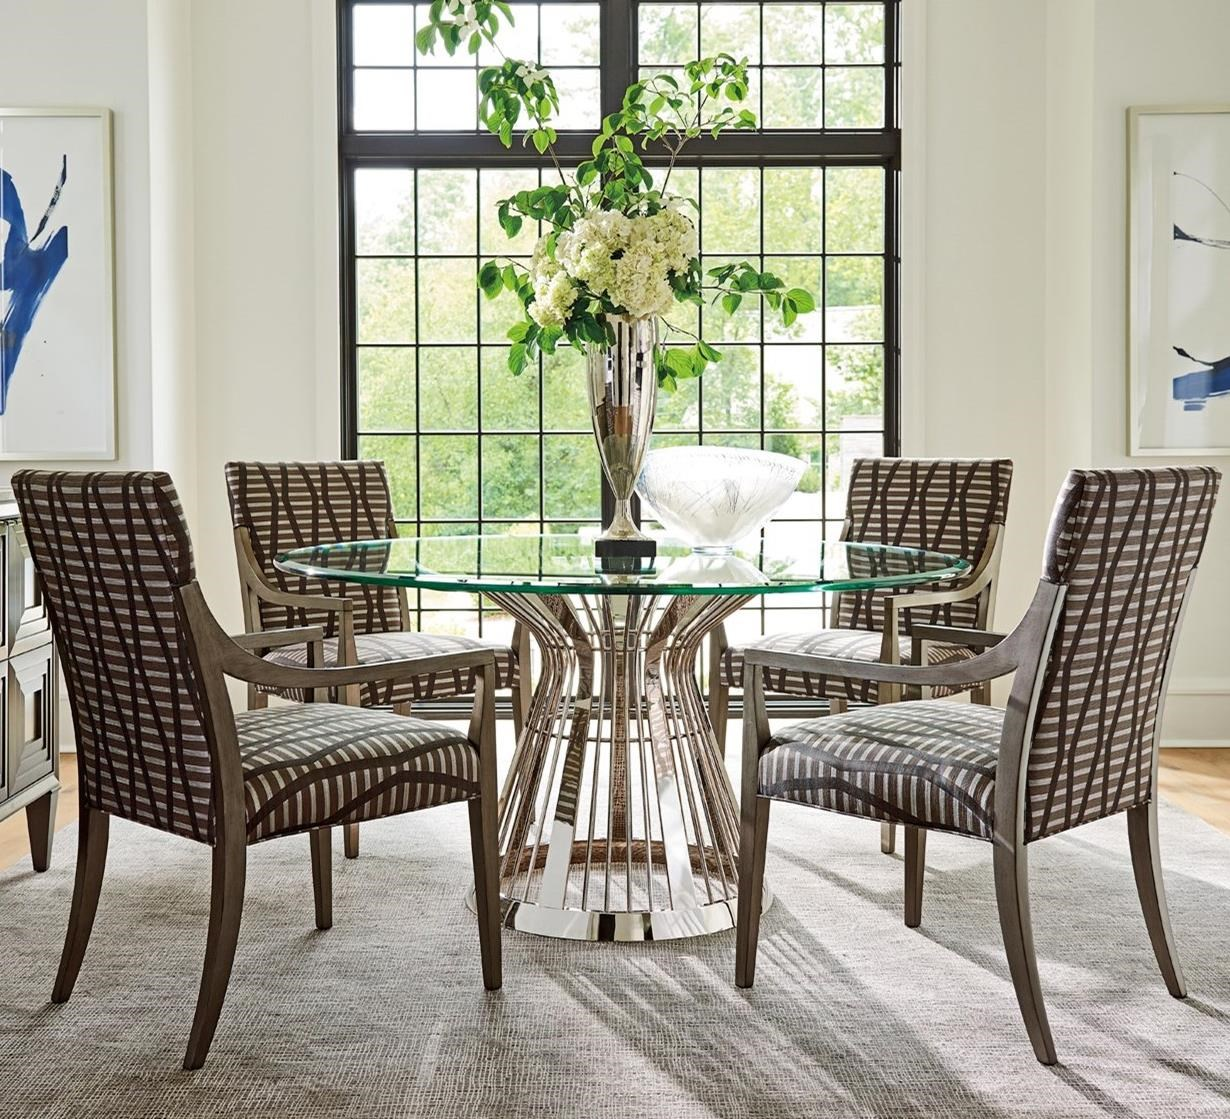 Ariana 5 Pc Dining Set by Lexington at Baer's Furniture